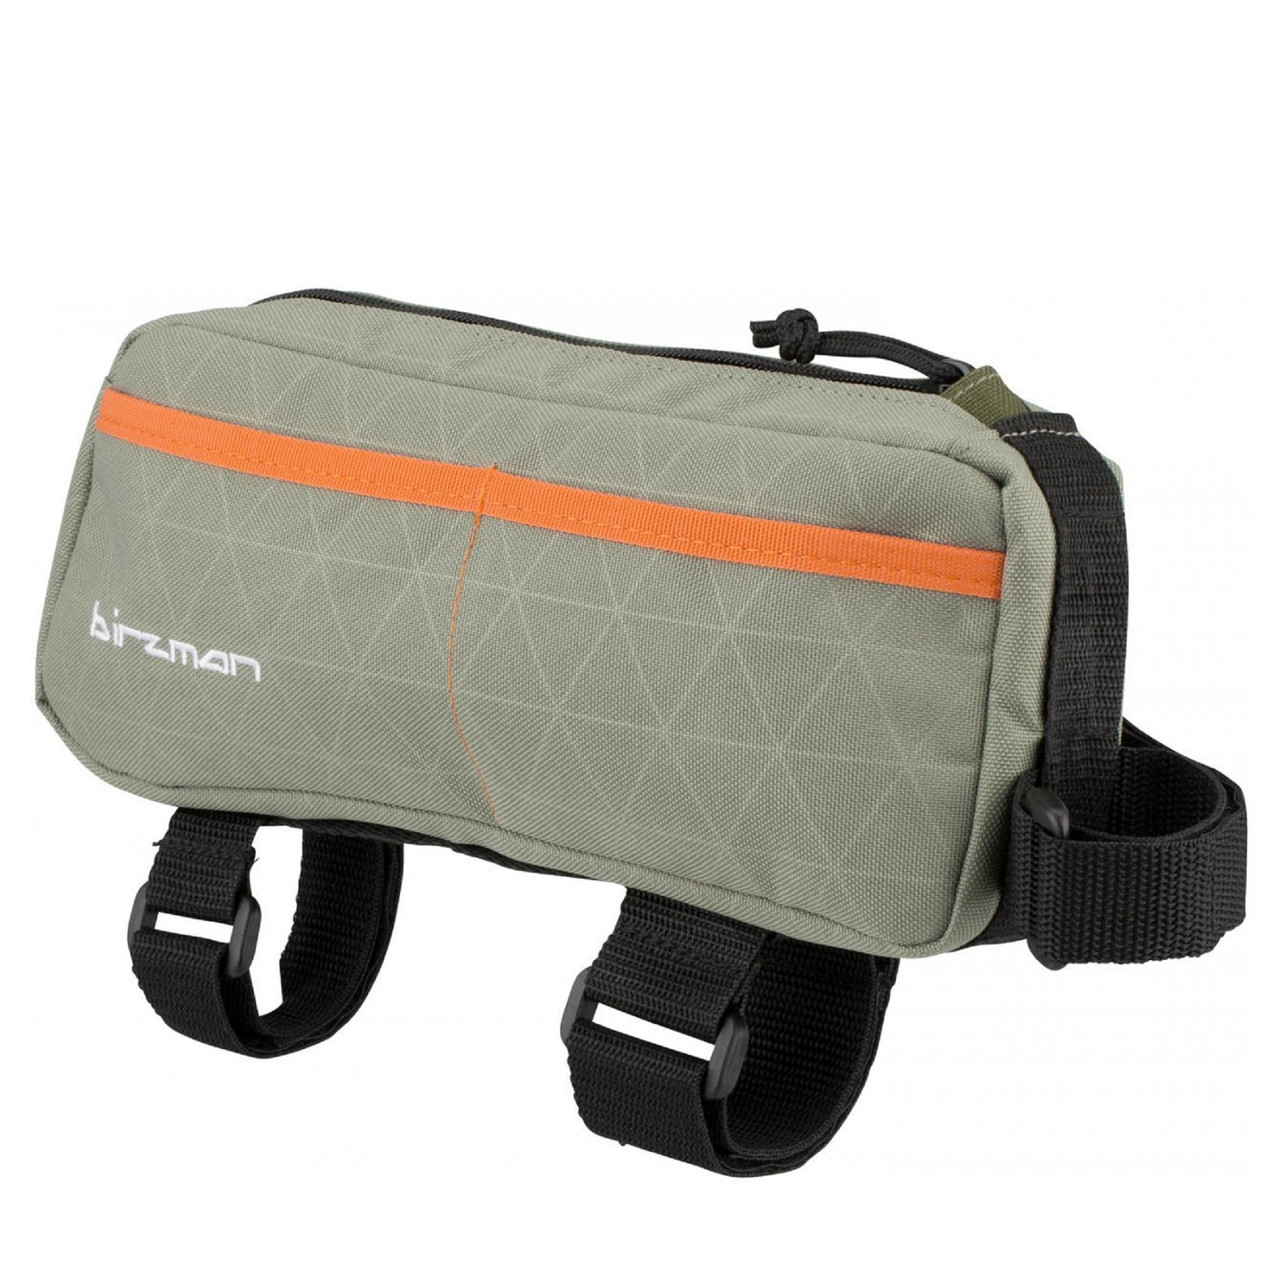 Сумка Birzman Packman Travel Top Tube Pack, 0.8л